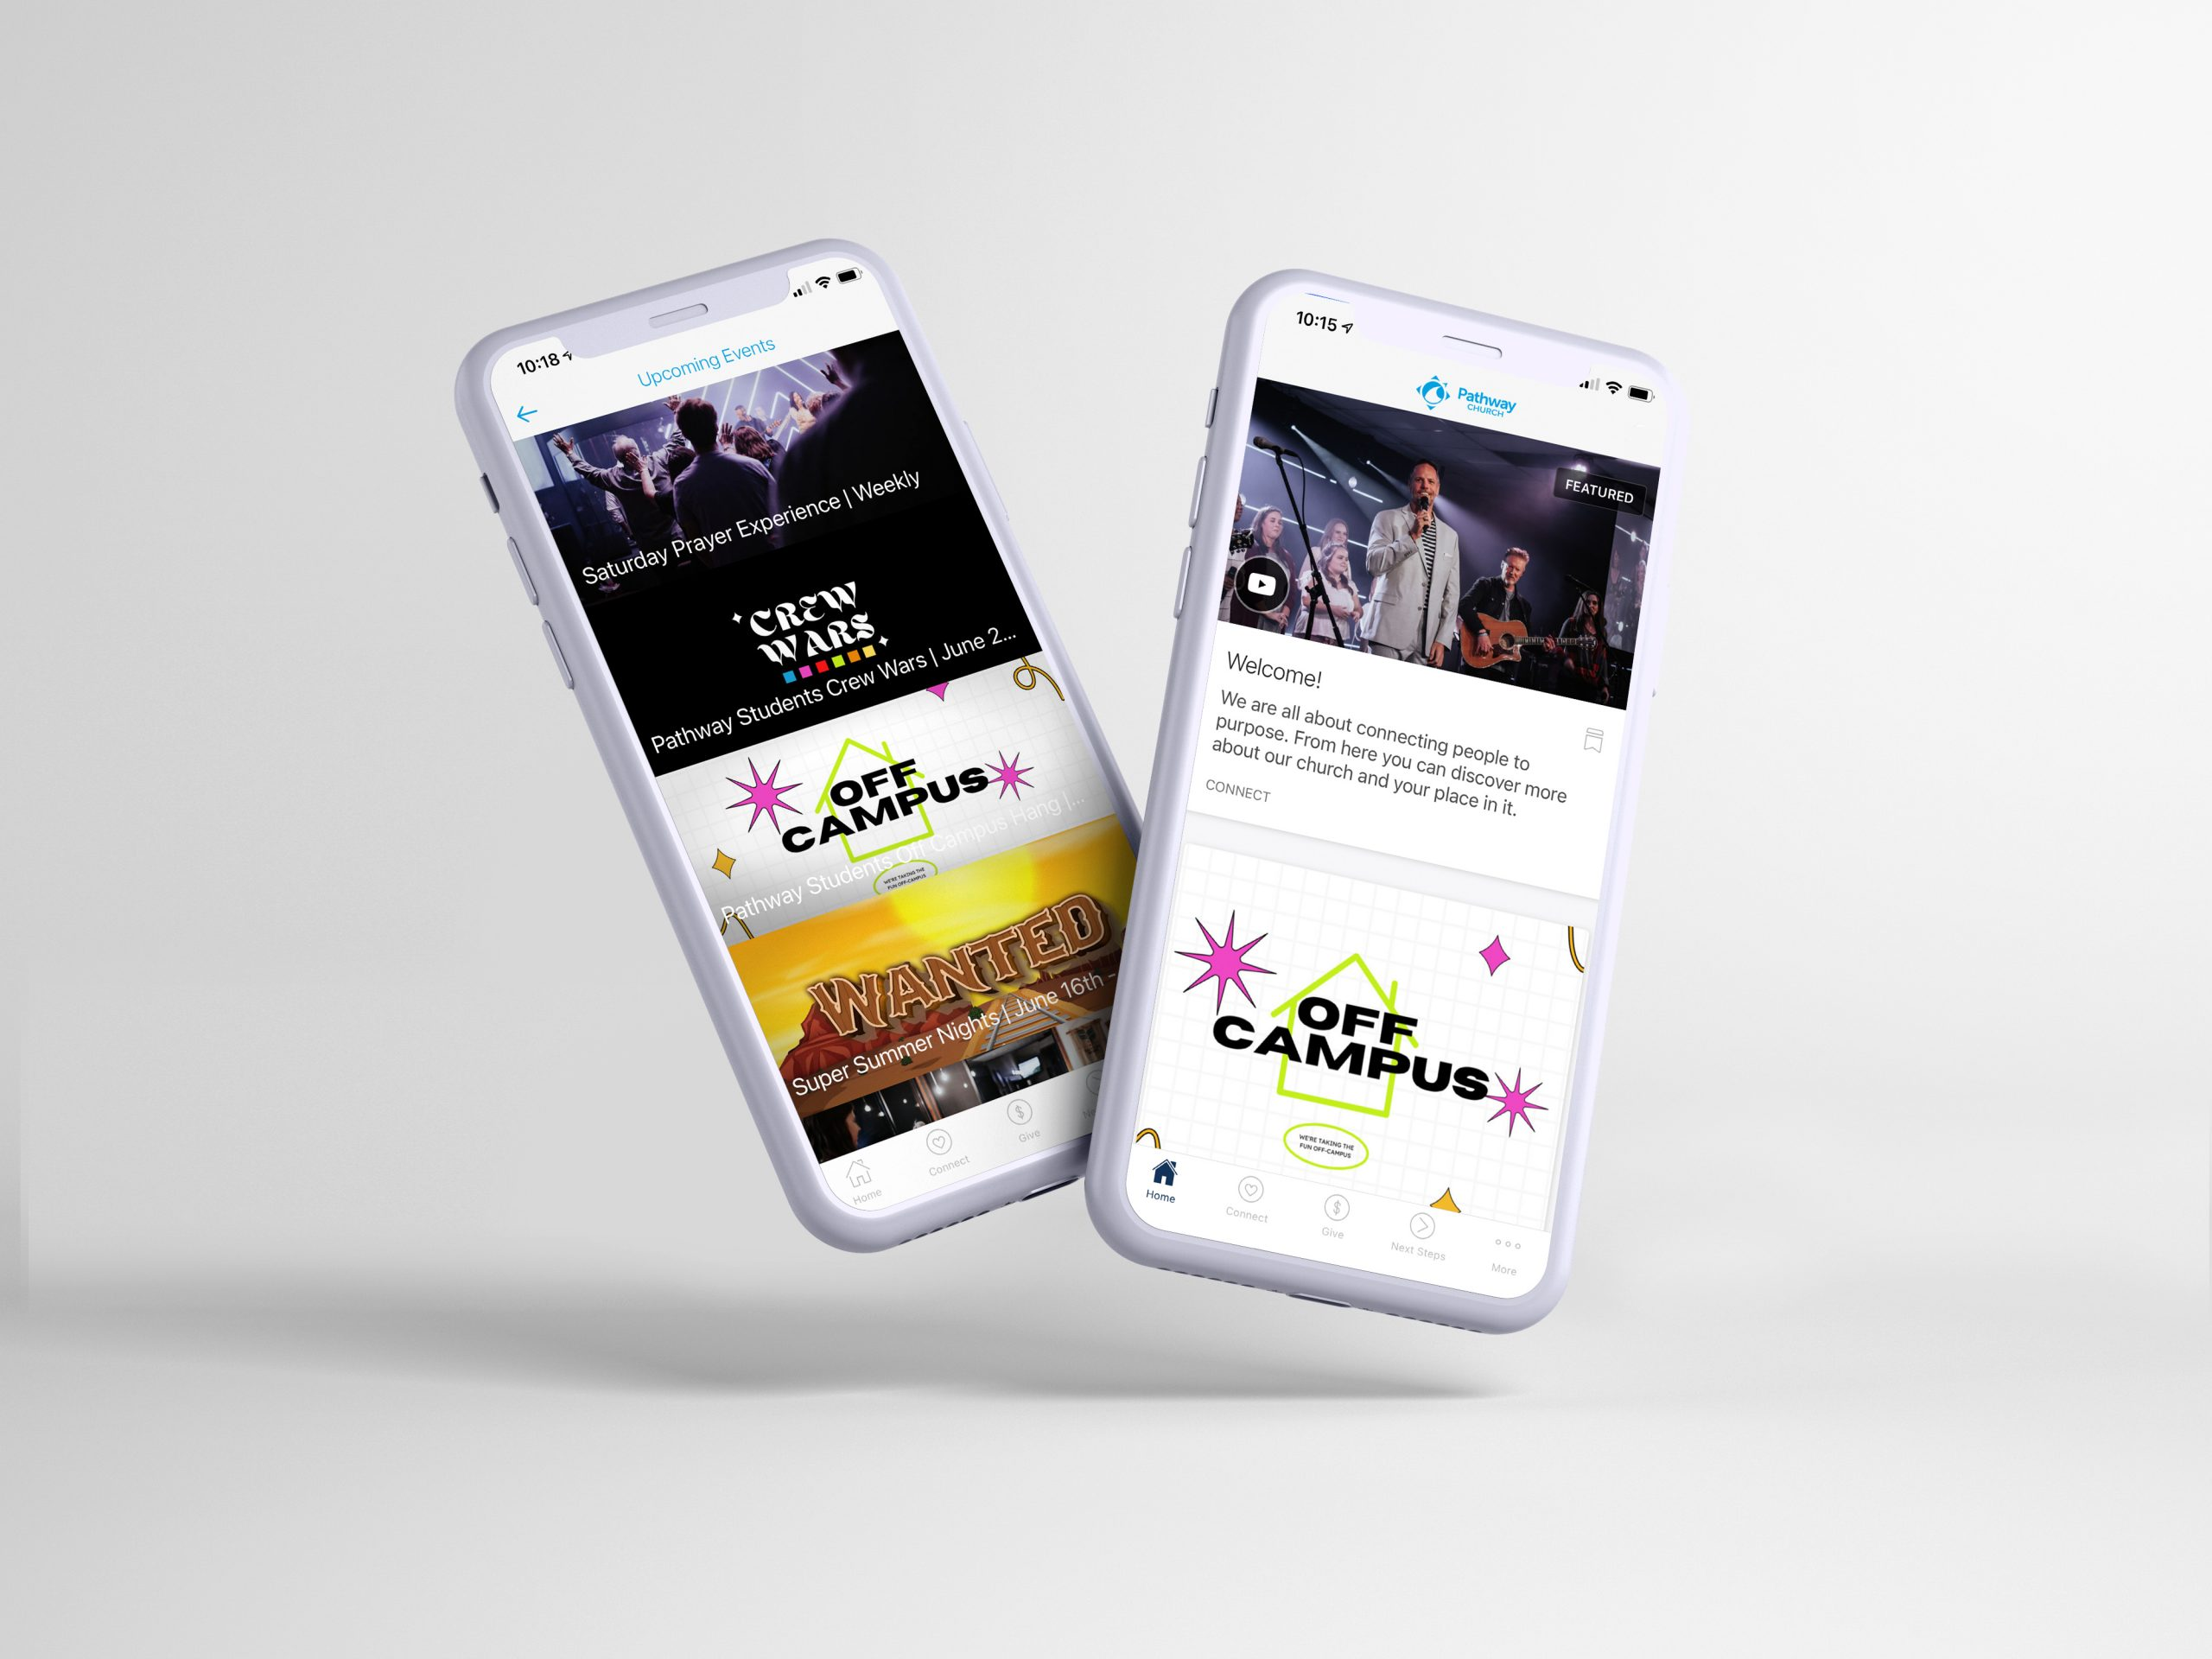 pathway church app images